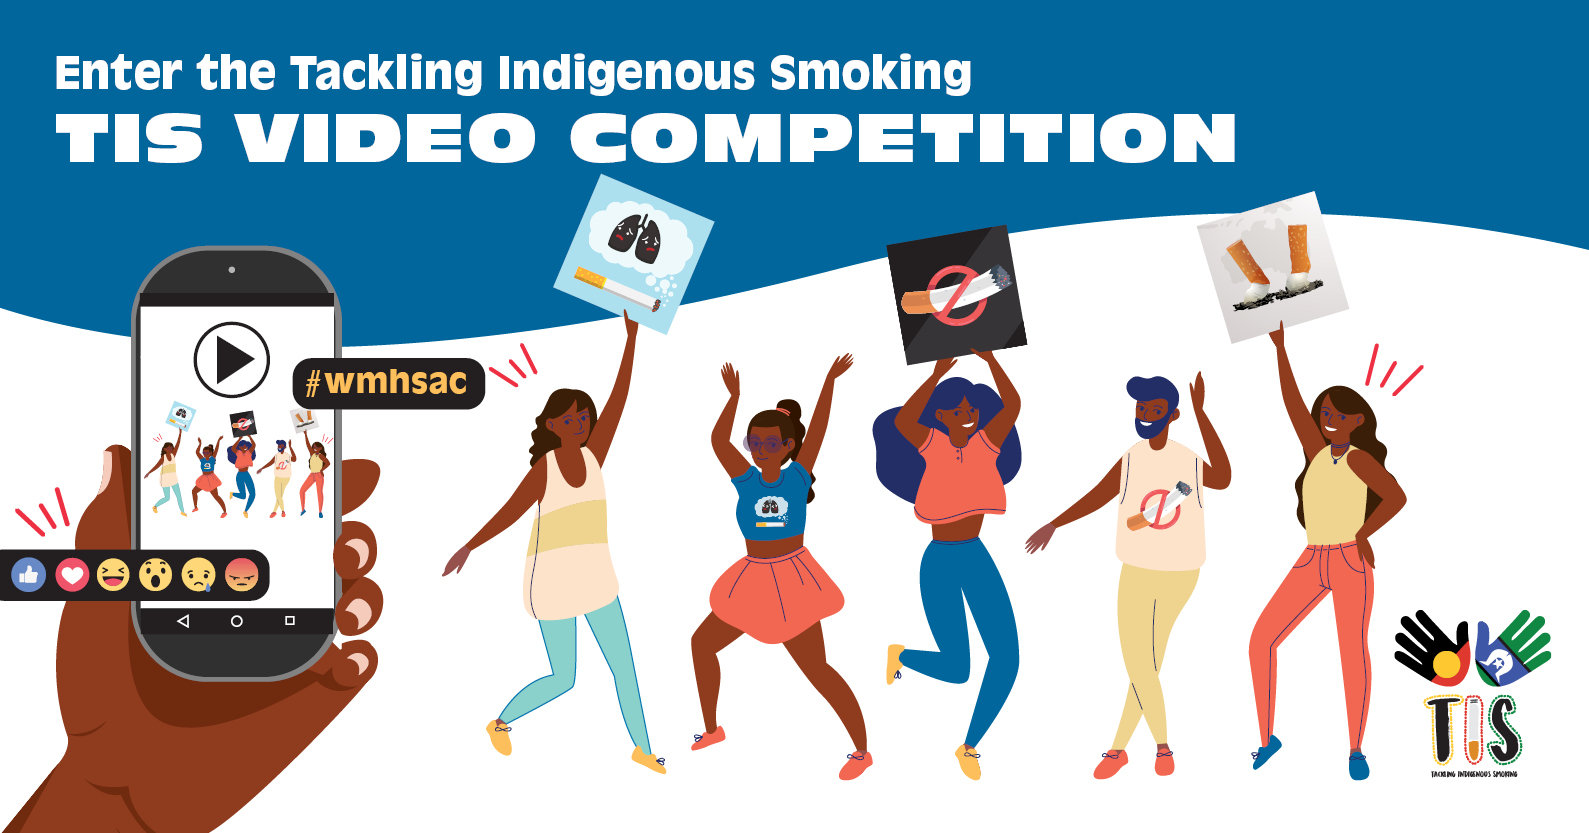 TIS Video Competition